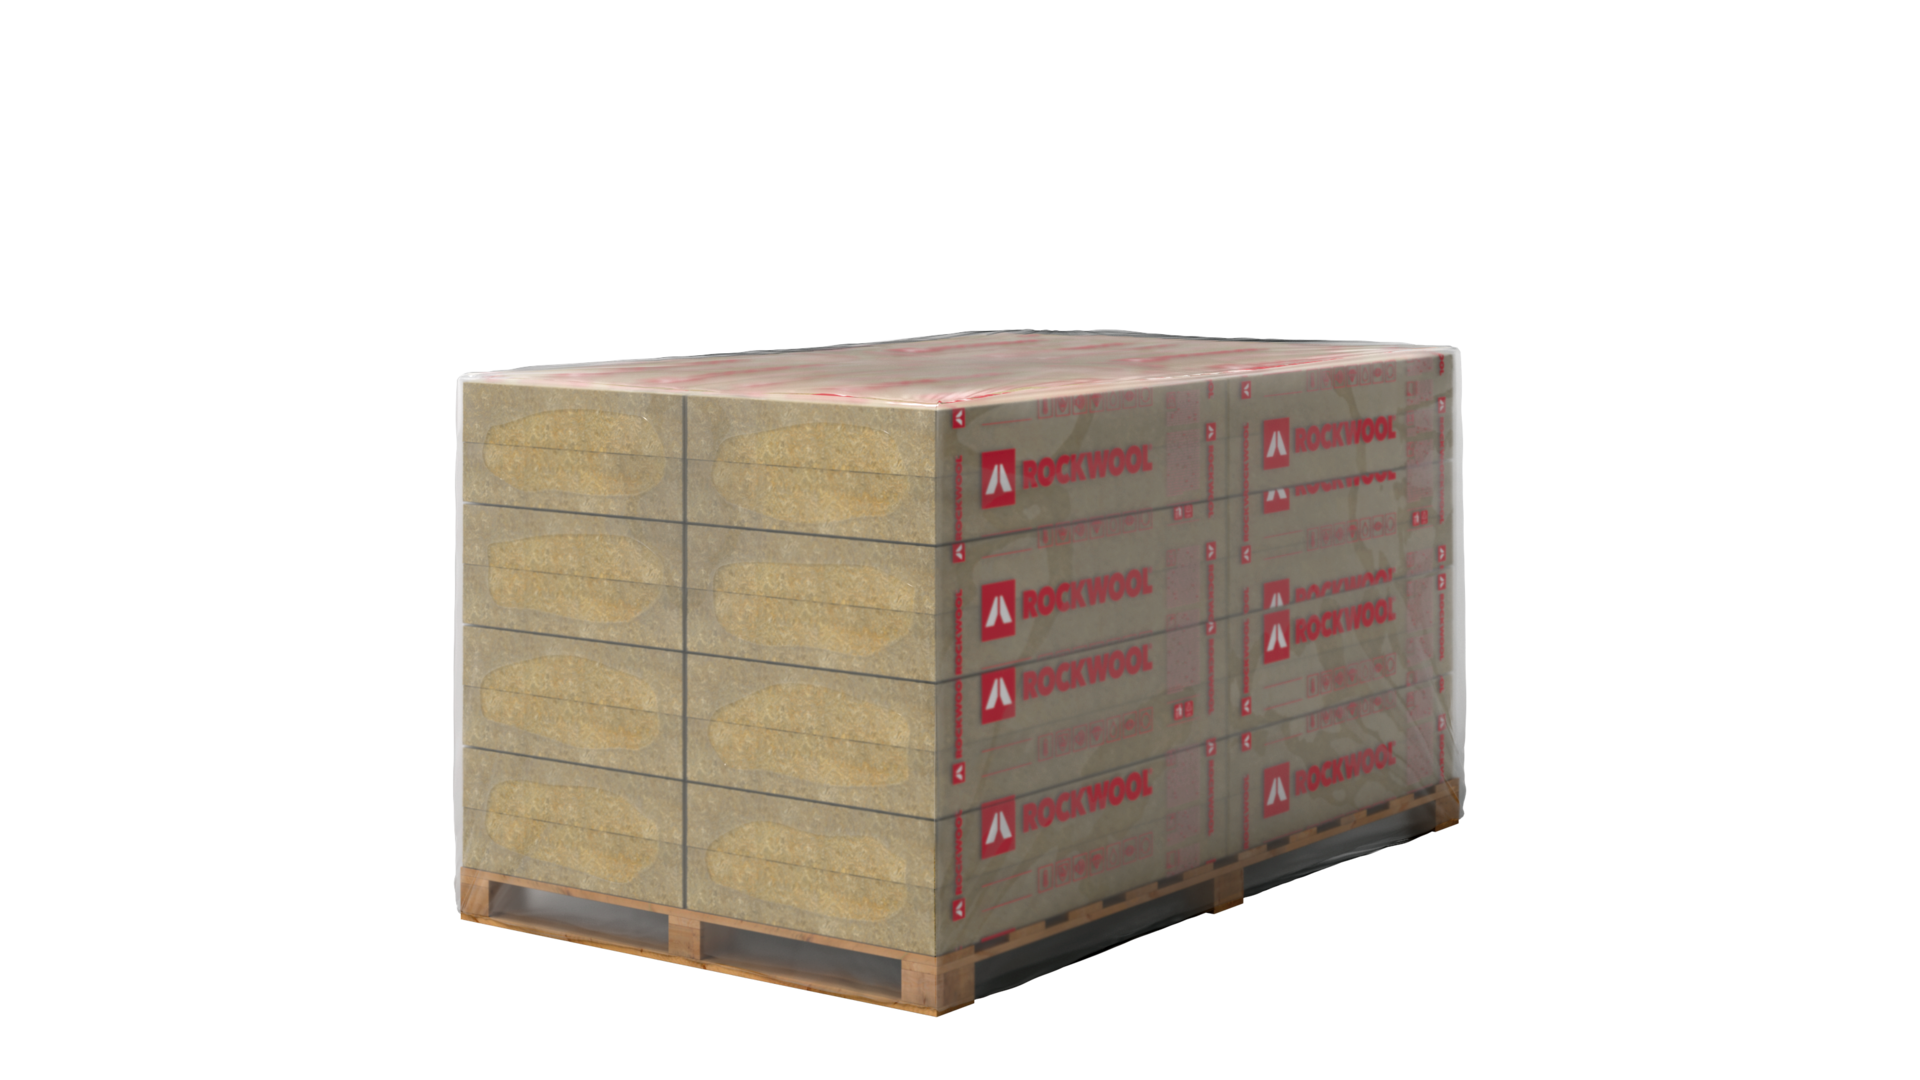 pallet, ewi, facade, products, external wall insulation, rendered facade, etics, frontrock s